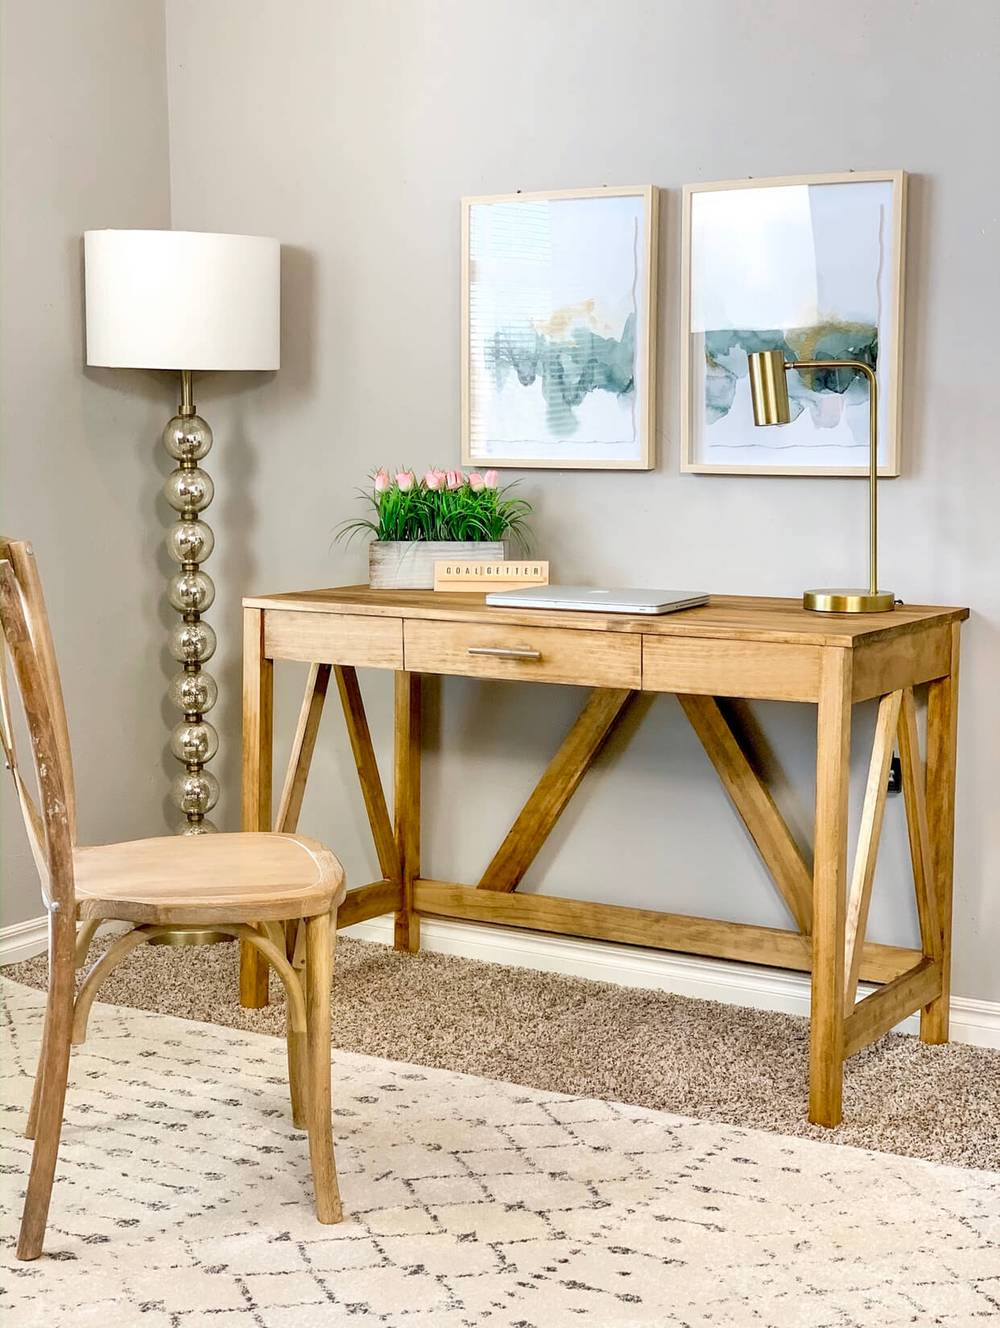 Free woodworking plans to build a Farmhouse Desk.